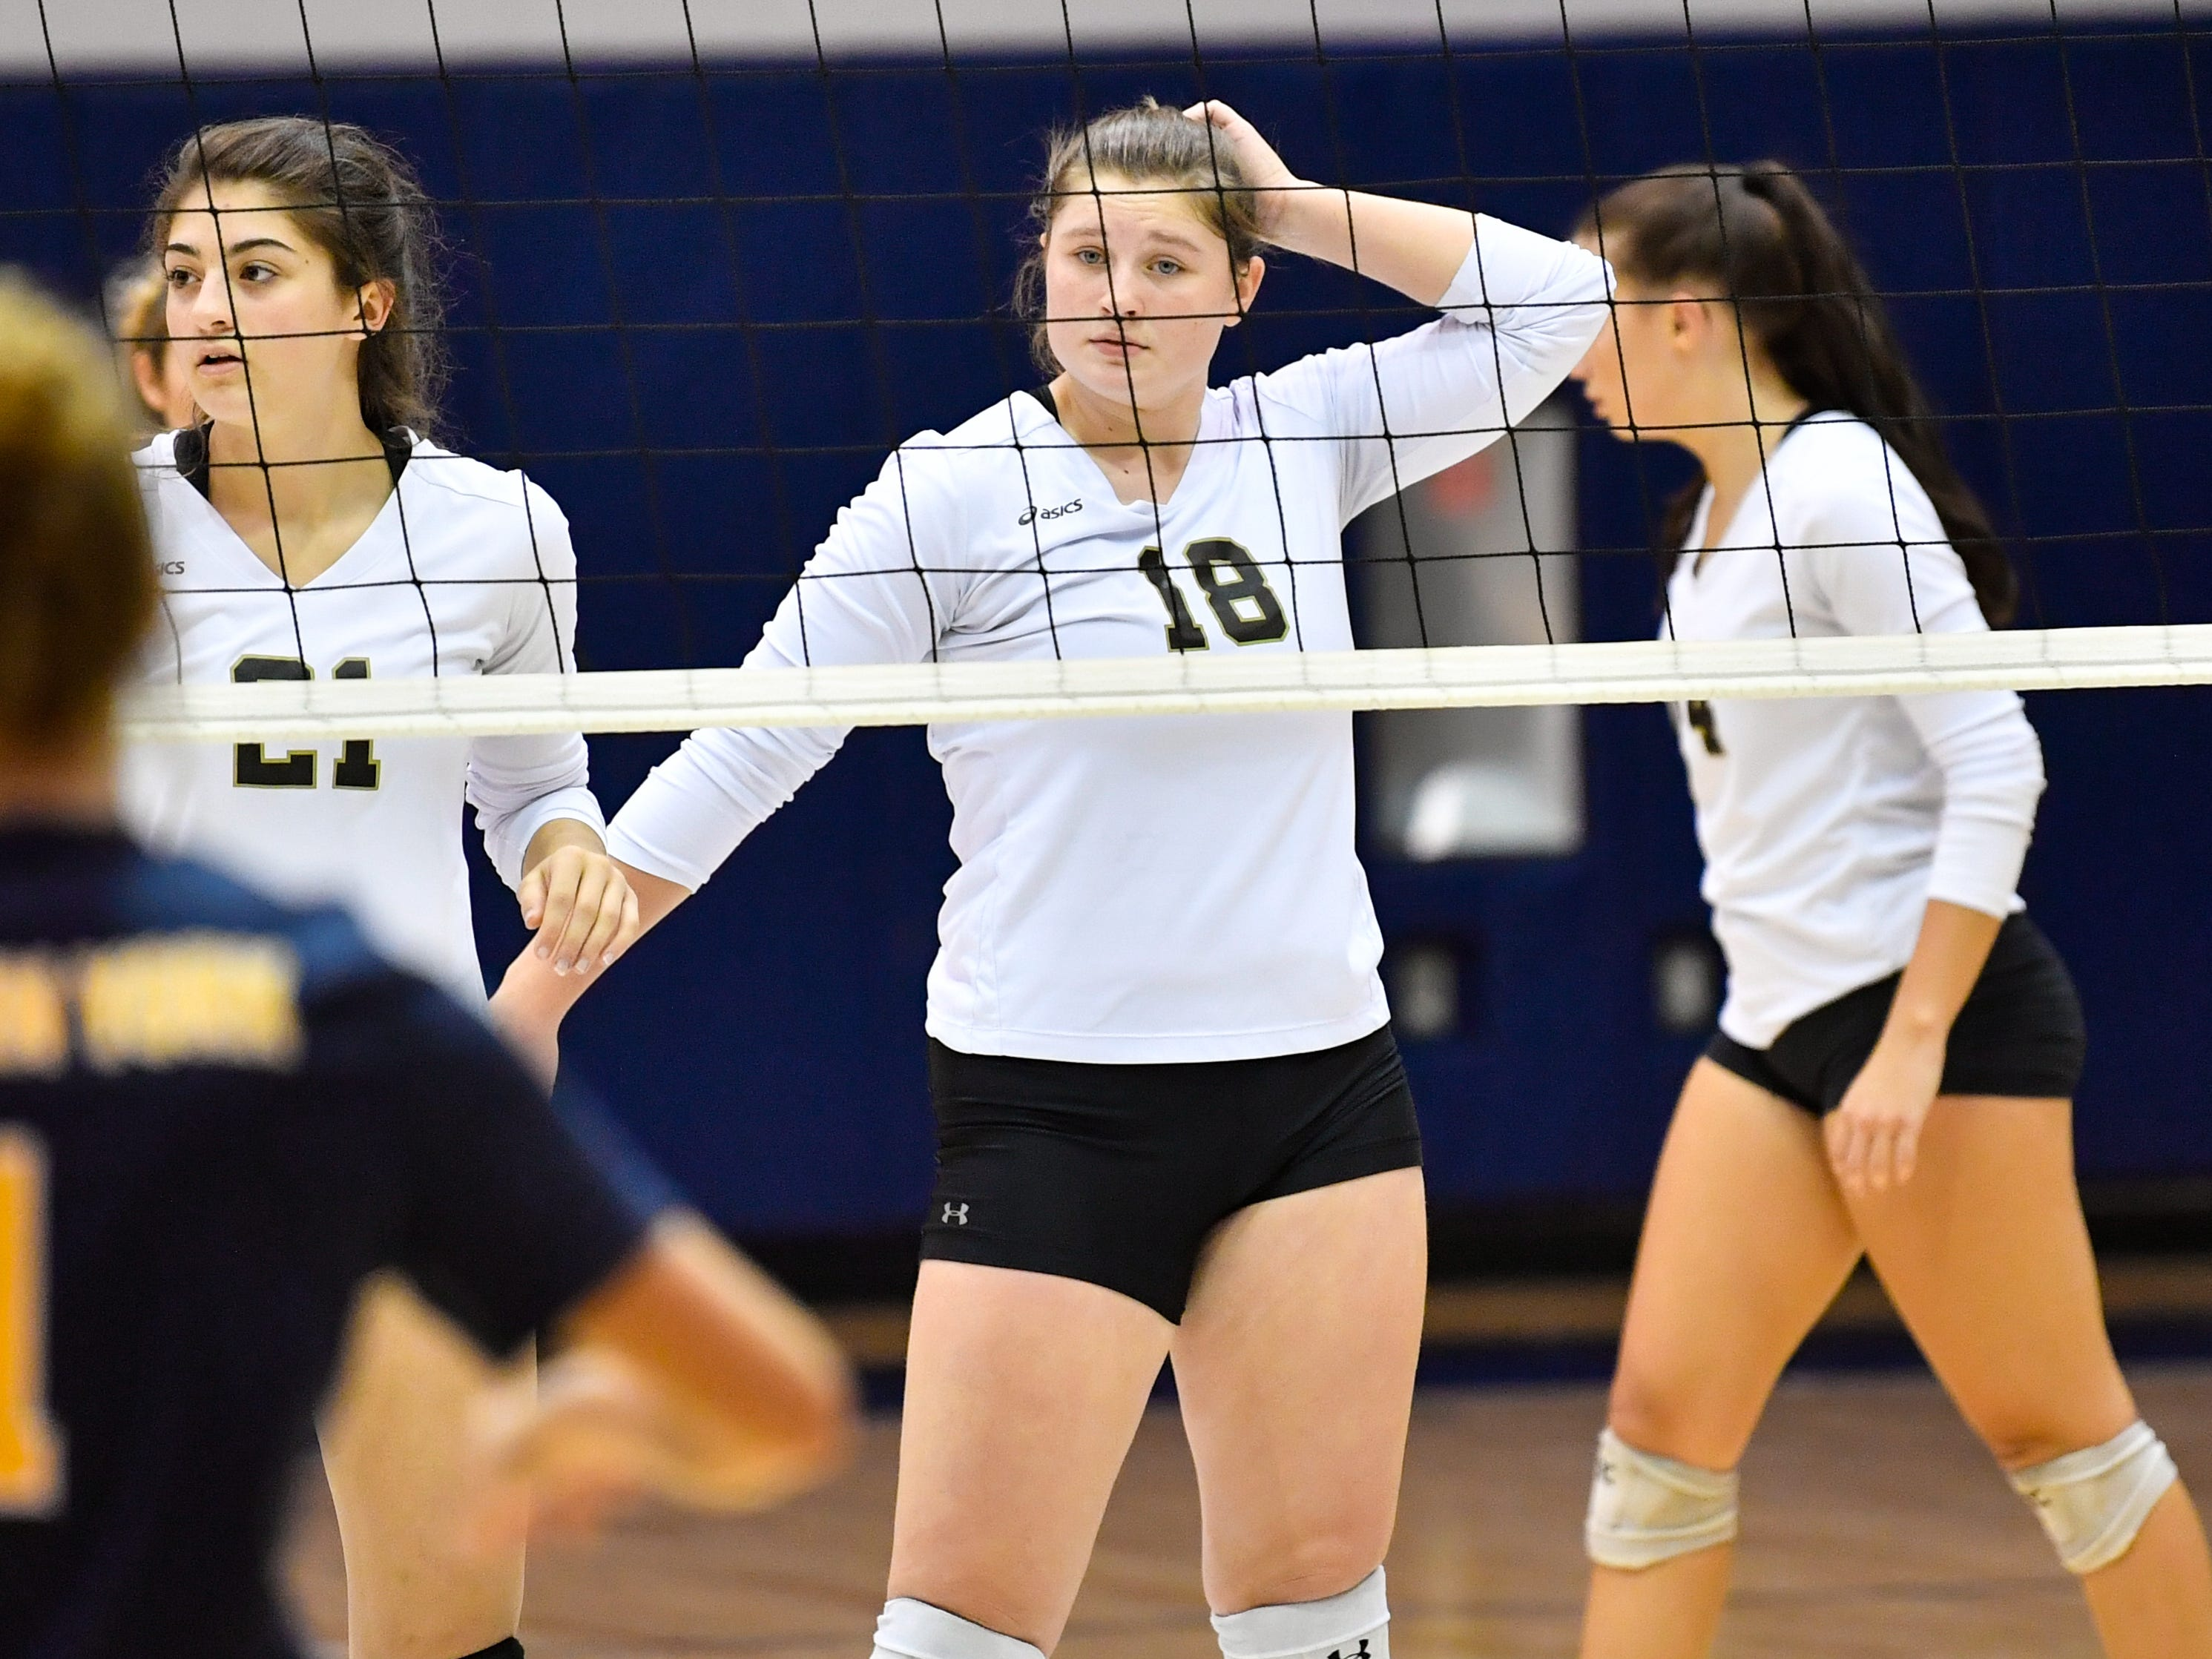 Maggie Sieg (18) of Delone Catholic watches the serve during the YAIAA league volleyball tournament semifinals between Eastern York and Delone Catholic, Tuesday, October 23, 2018. The Squirettes defeated the Golden Knights 3-2.